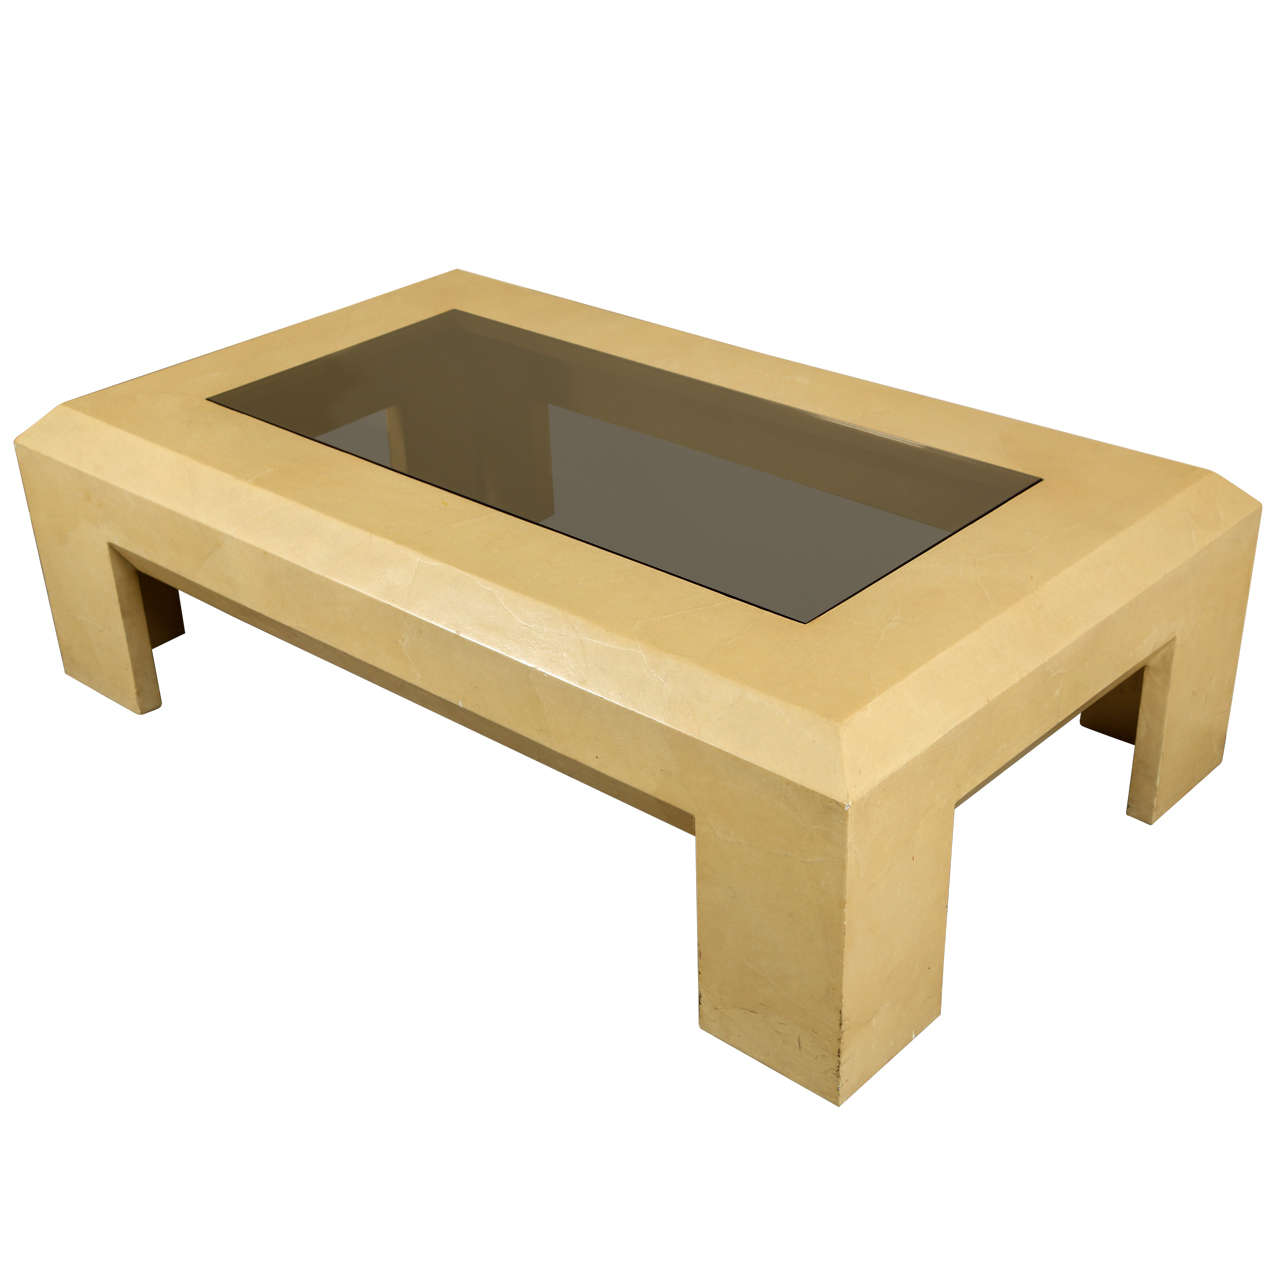 Very Nice Angular Coffee Table By Steve Chase At 1stdibs